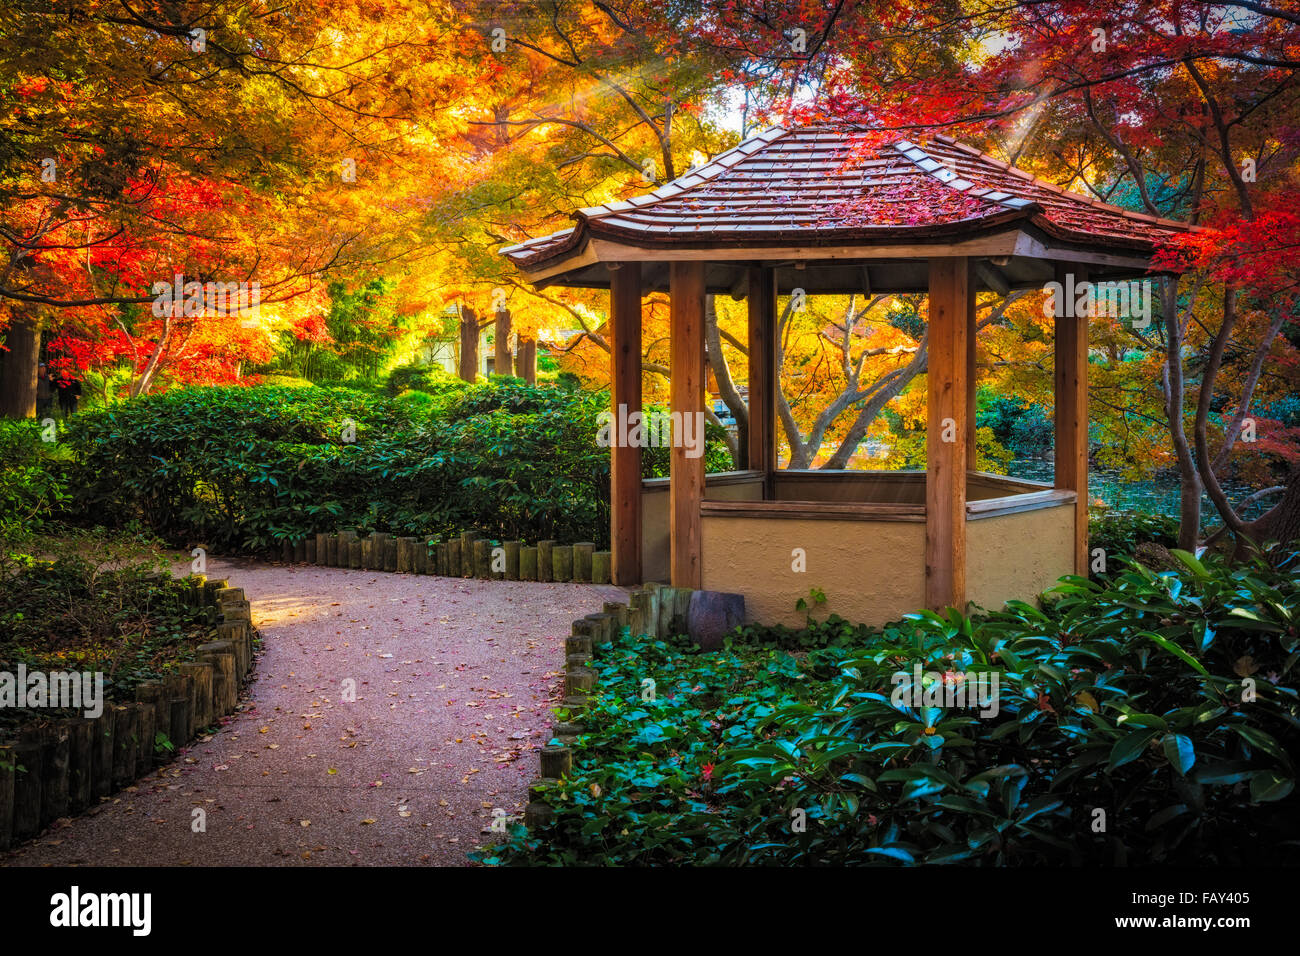 The Fort Worth Japanese Garden Is A 7 5 Acre Japanese Garden In The Stock Photo Alamy